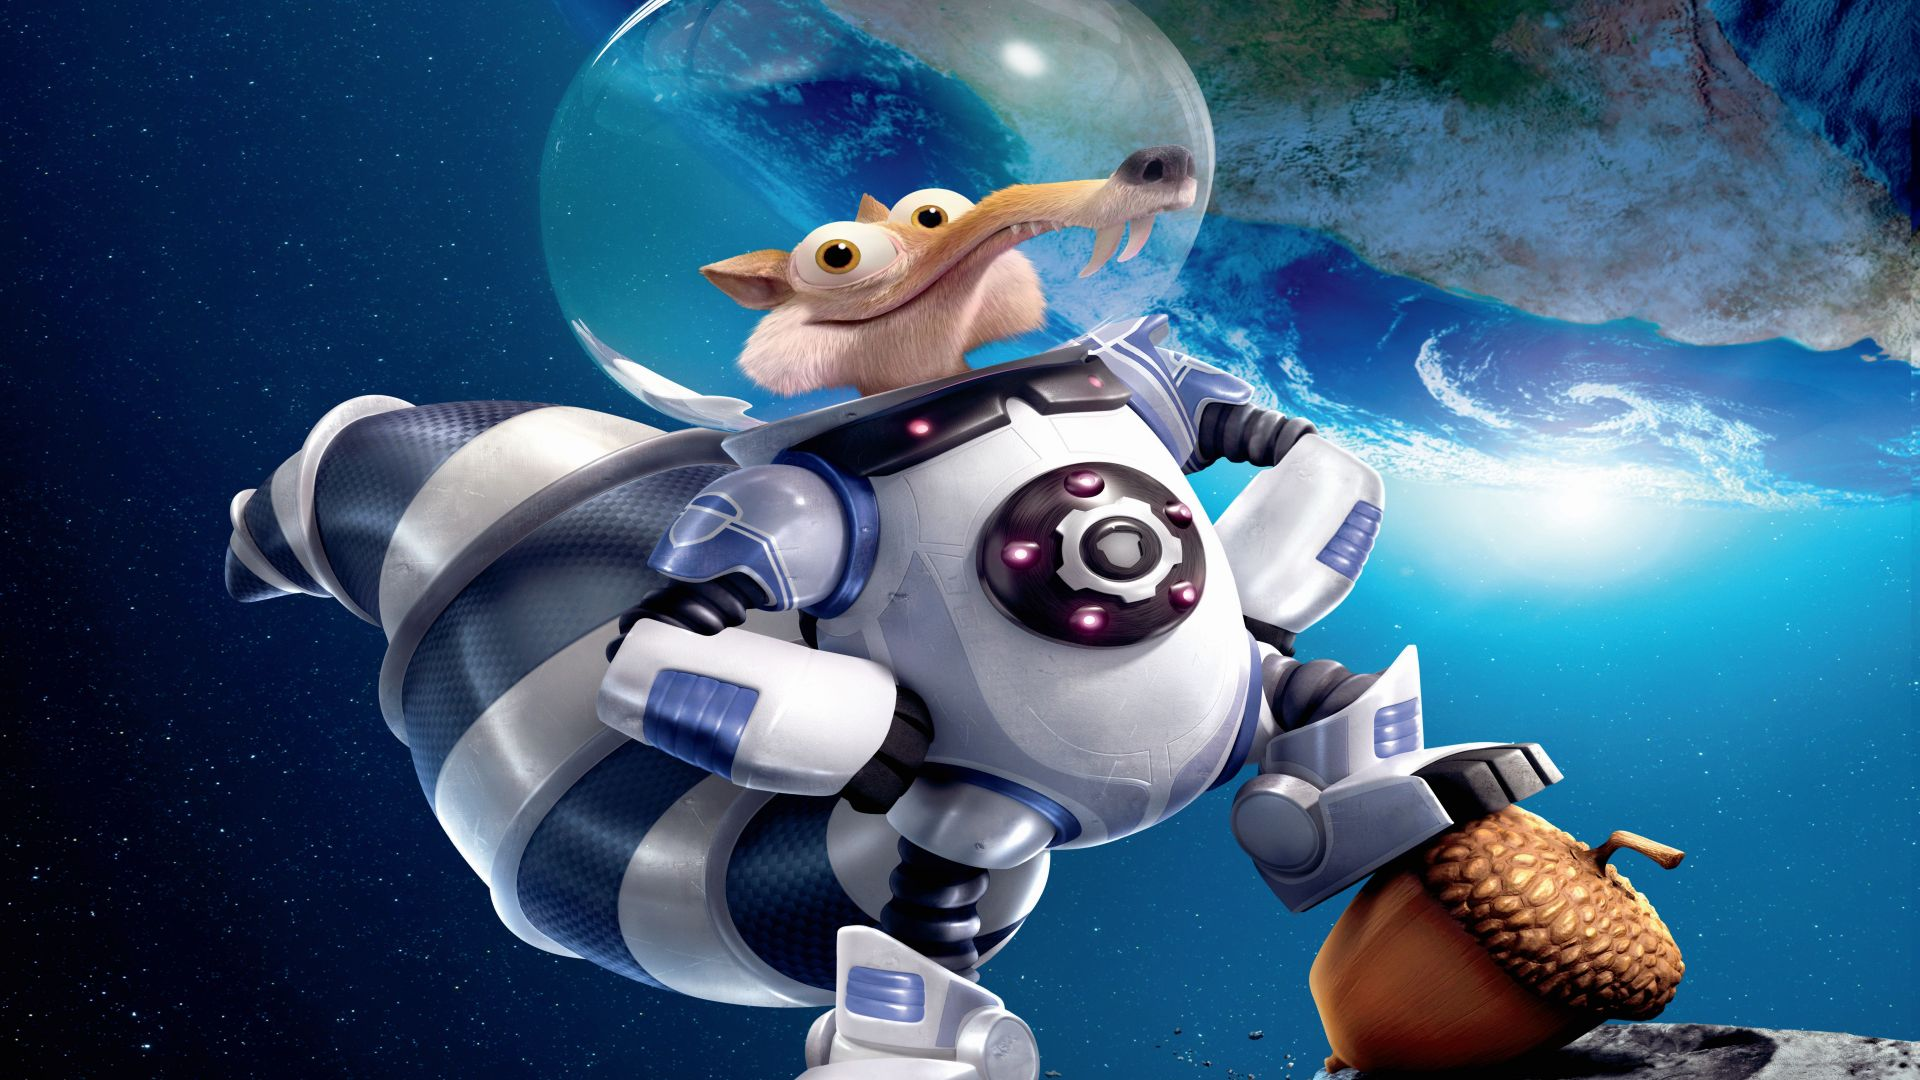 Ice Age 5: Collision Course, squirrel, best animations of 2016, space (horizontal)